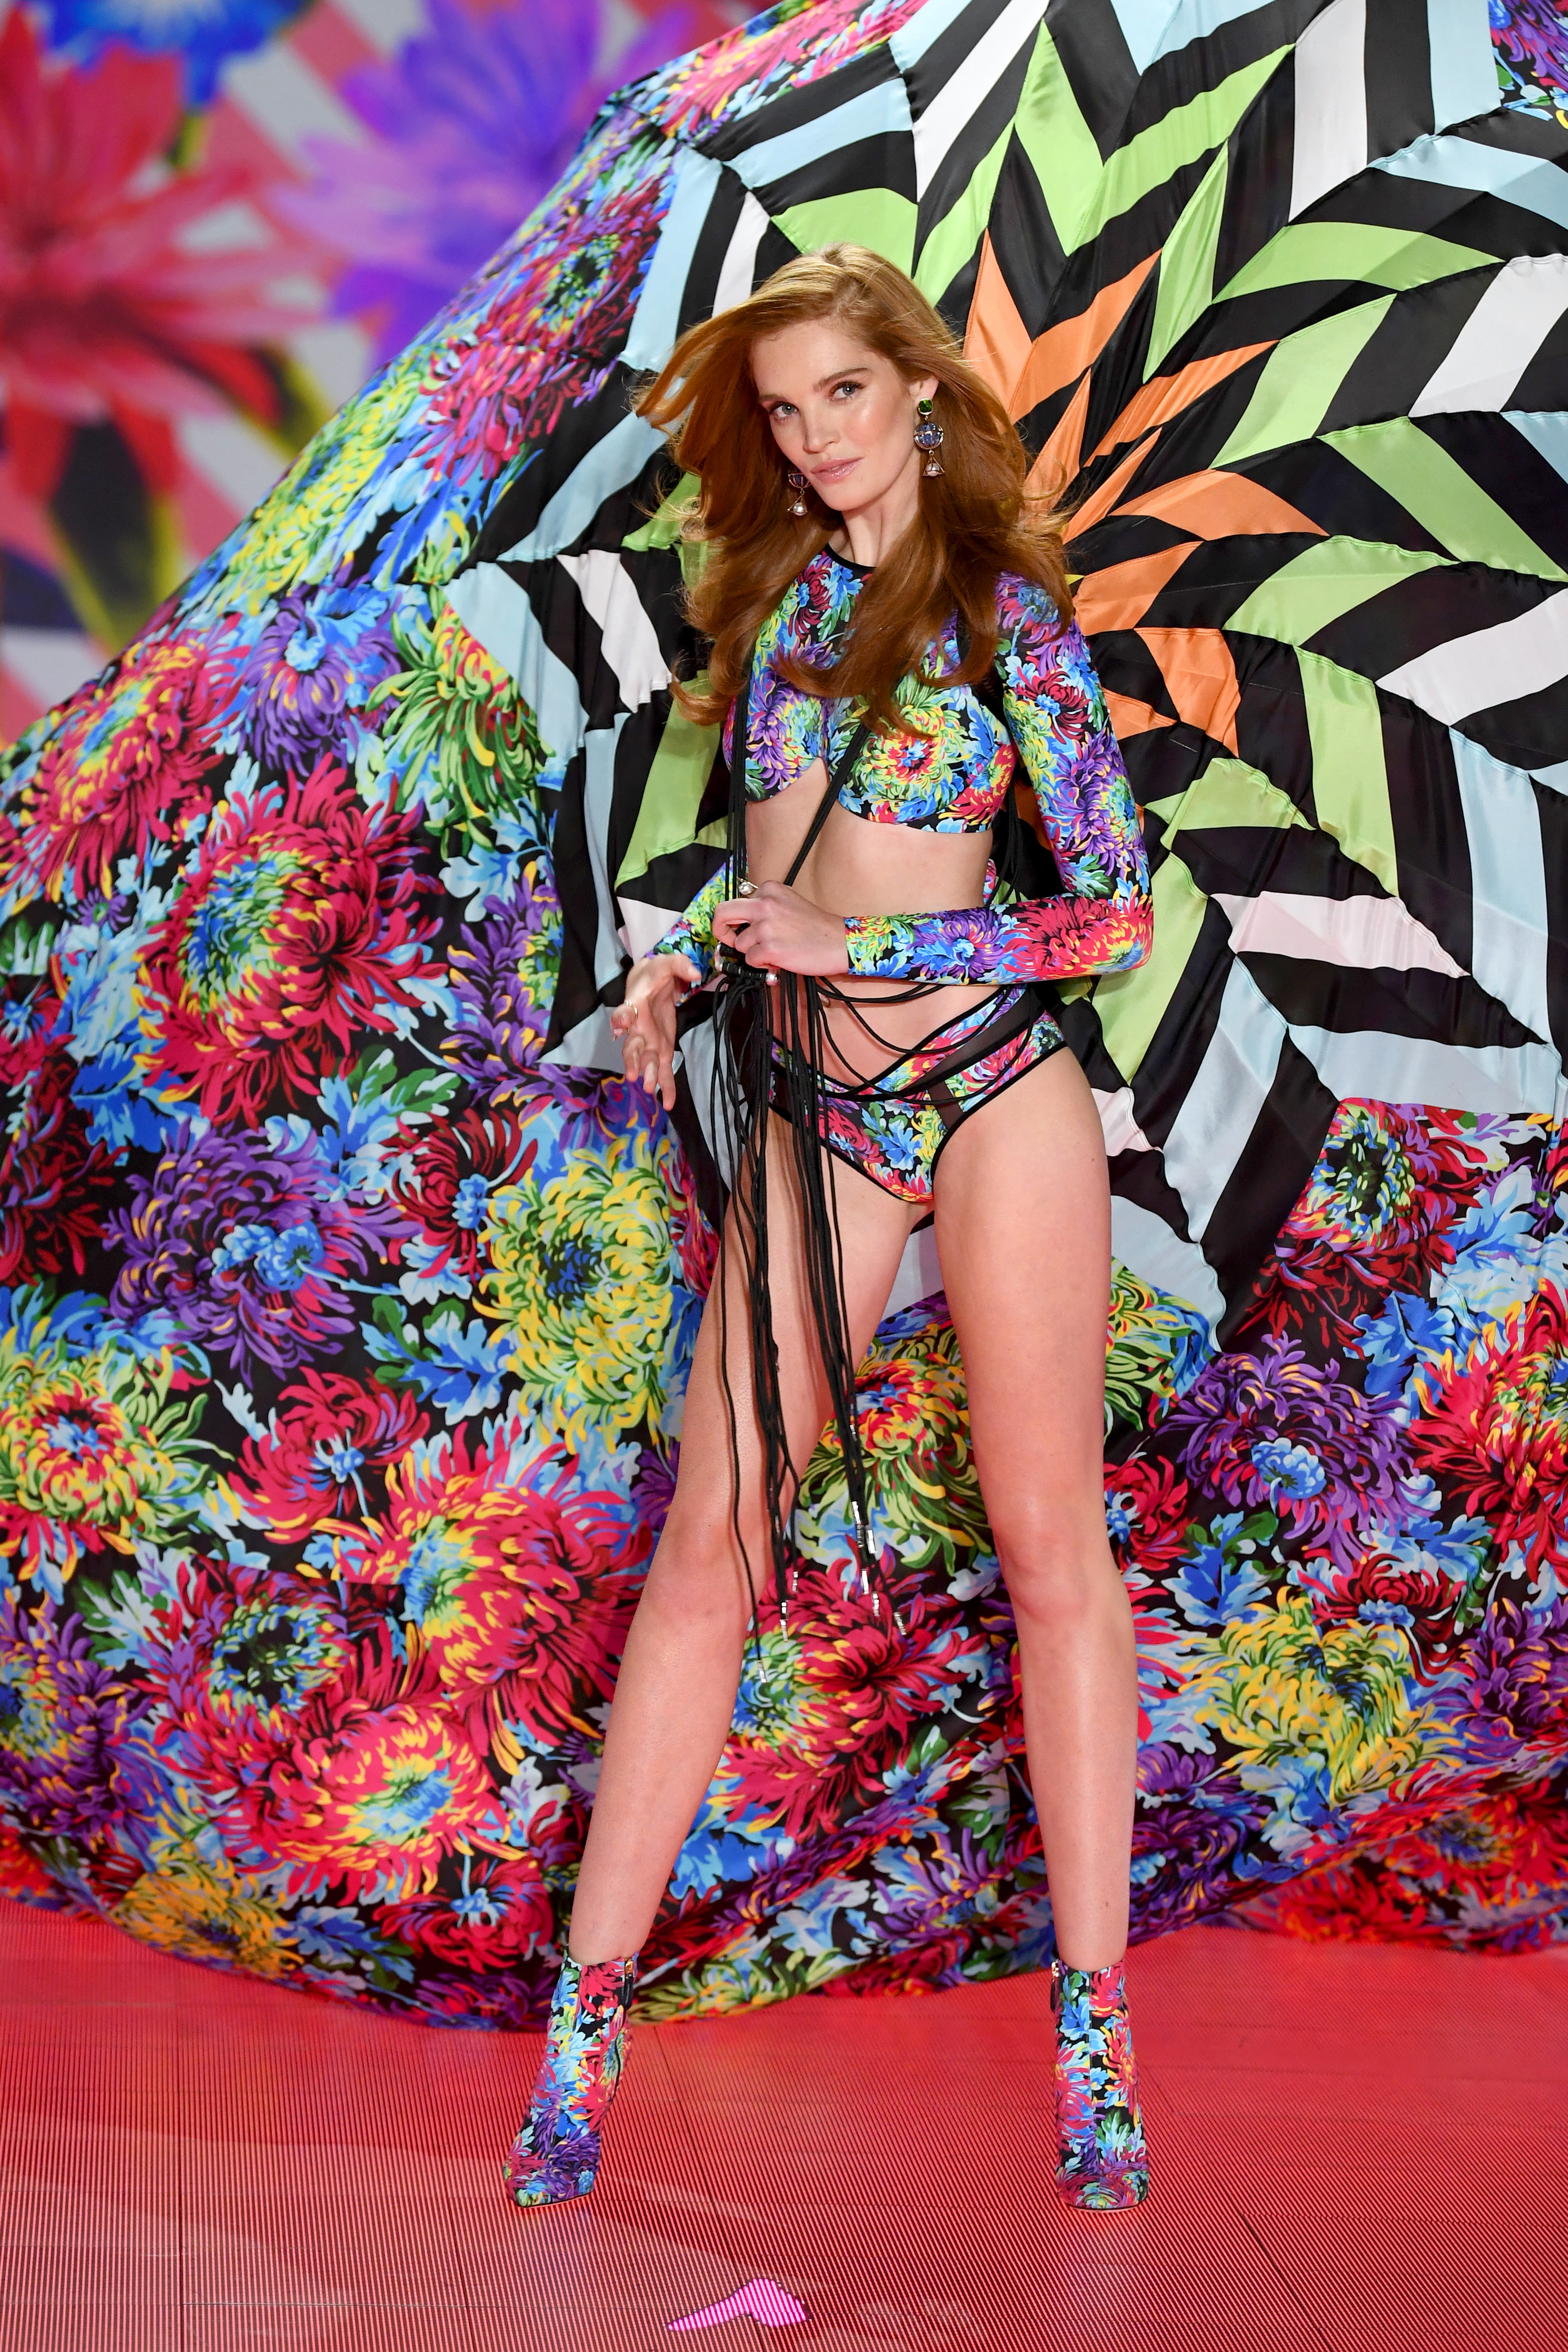 Alexina Graham walks the runway during the 2018 Victoria's Secret Fashion Show at Pier 94 on November 8, 2018, in New York City. (Getty Images)